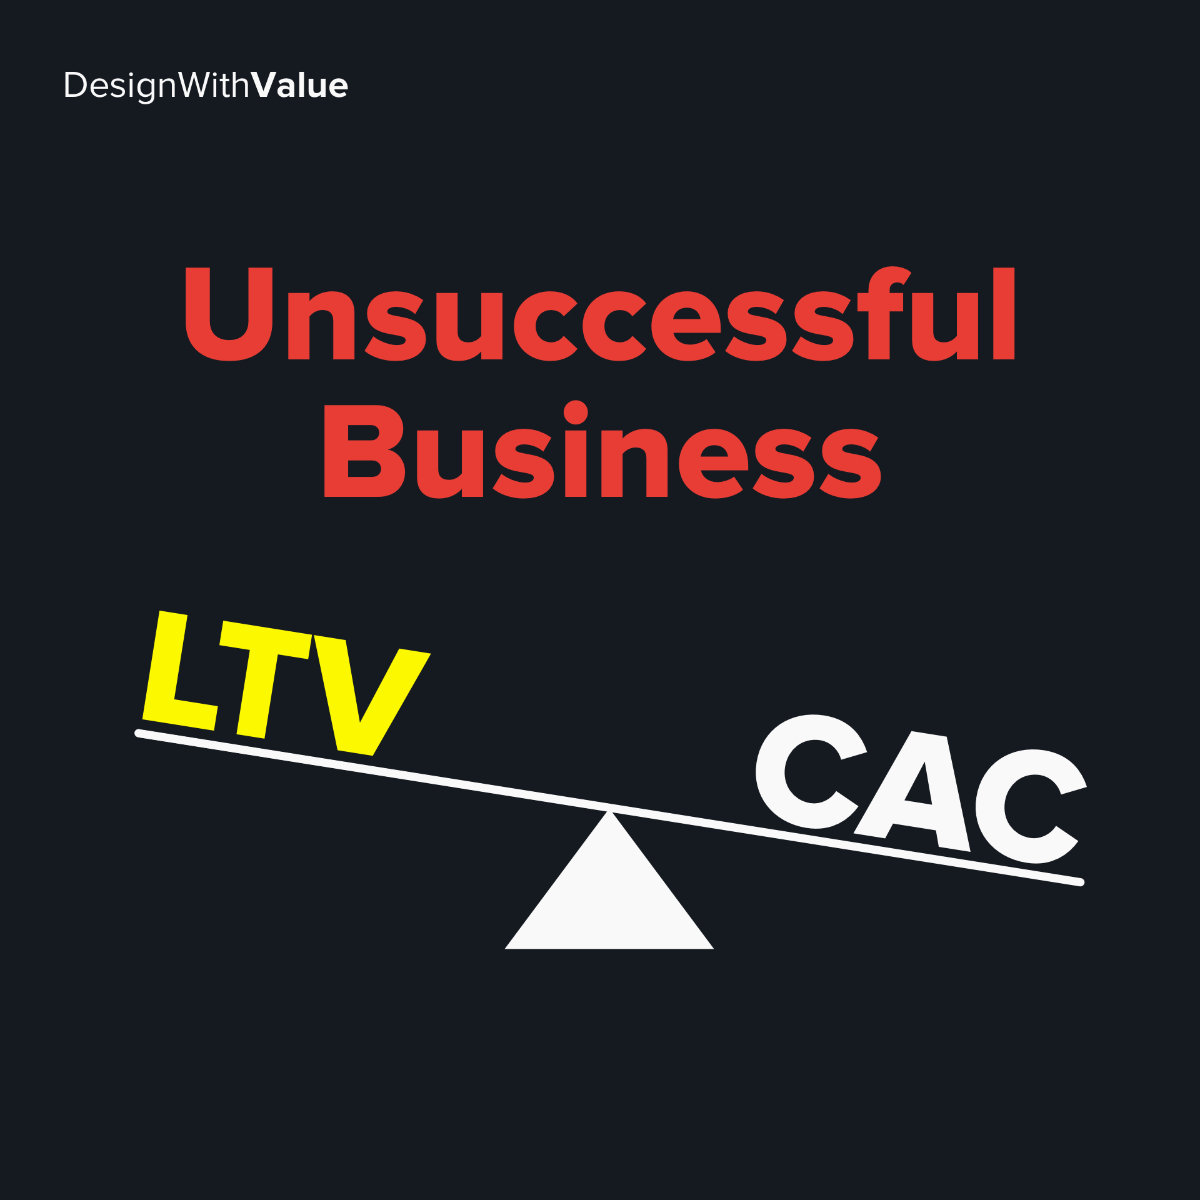 Unsuccessful business = CAC overweights LTV